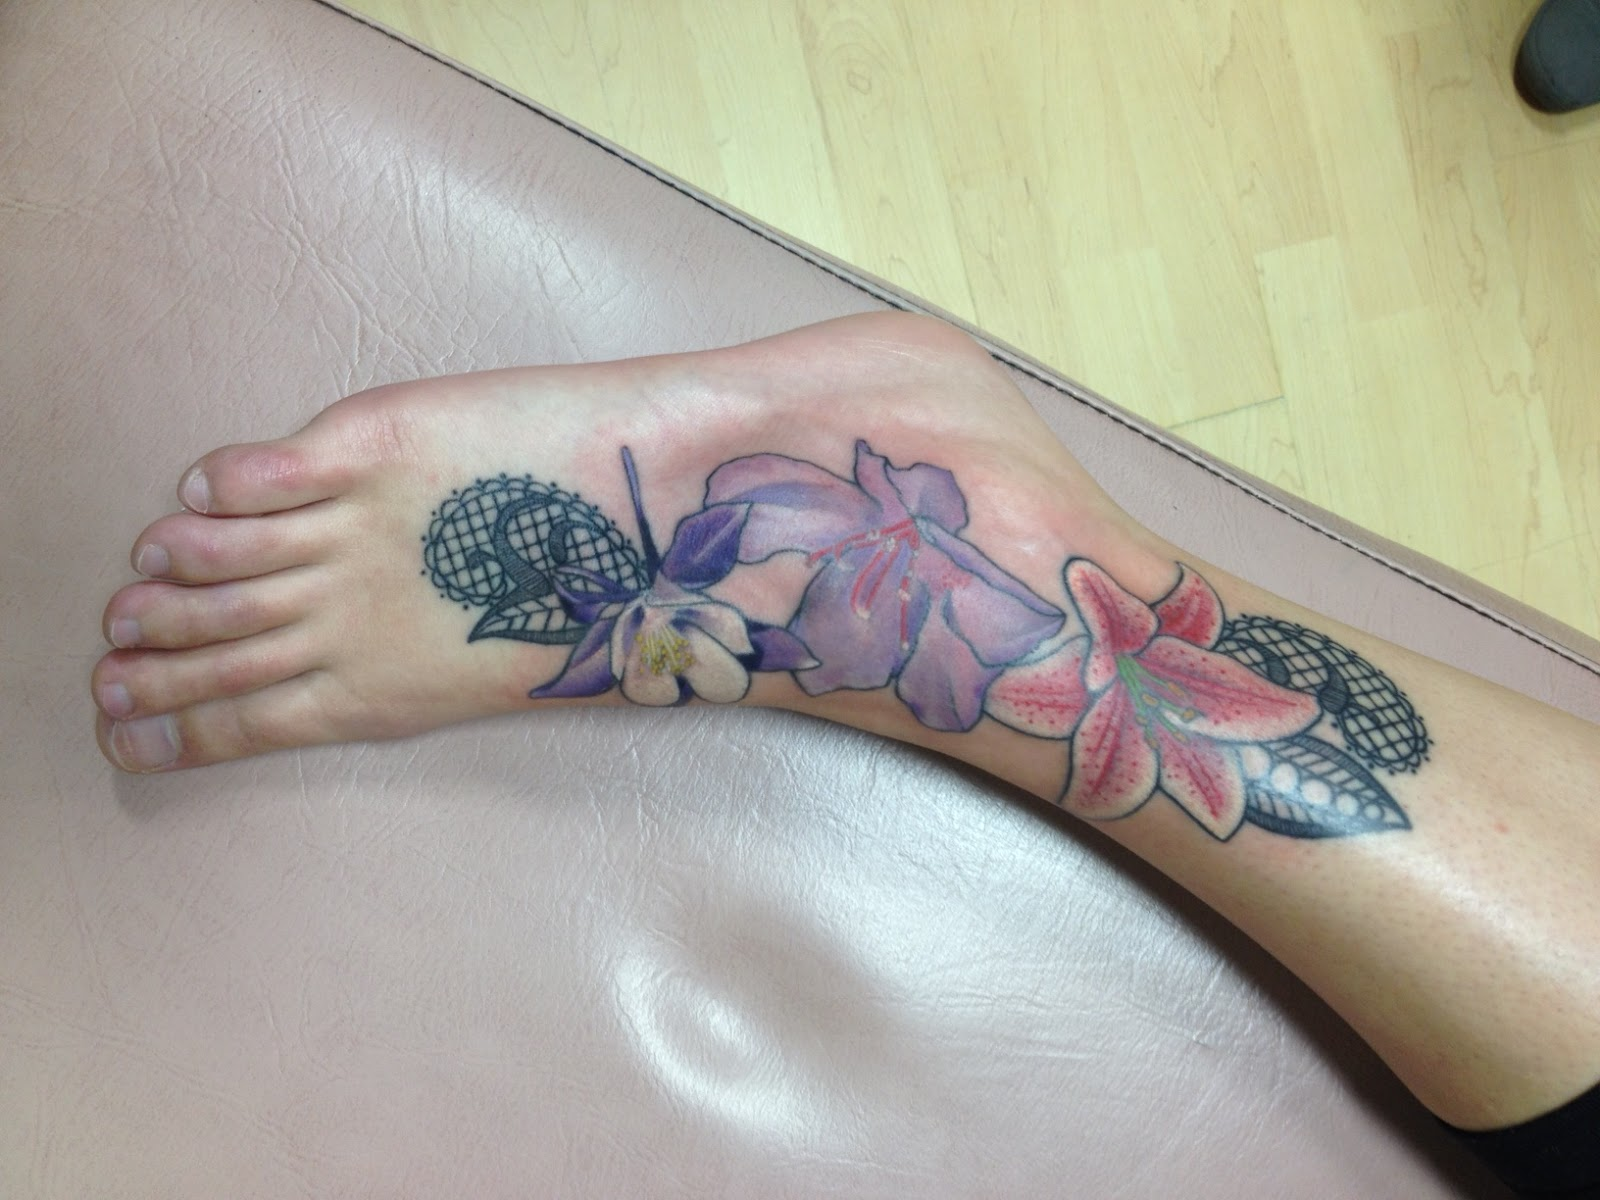 Museum peoples tattoos transitions and flowers i got this tattoo to mark several important transitions and periods in my life i started a graduate degree program in ecology it was an interdisciplinary izmirmasajfo